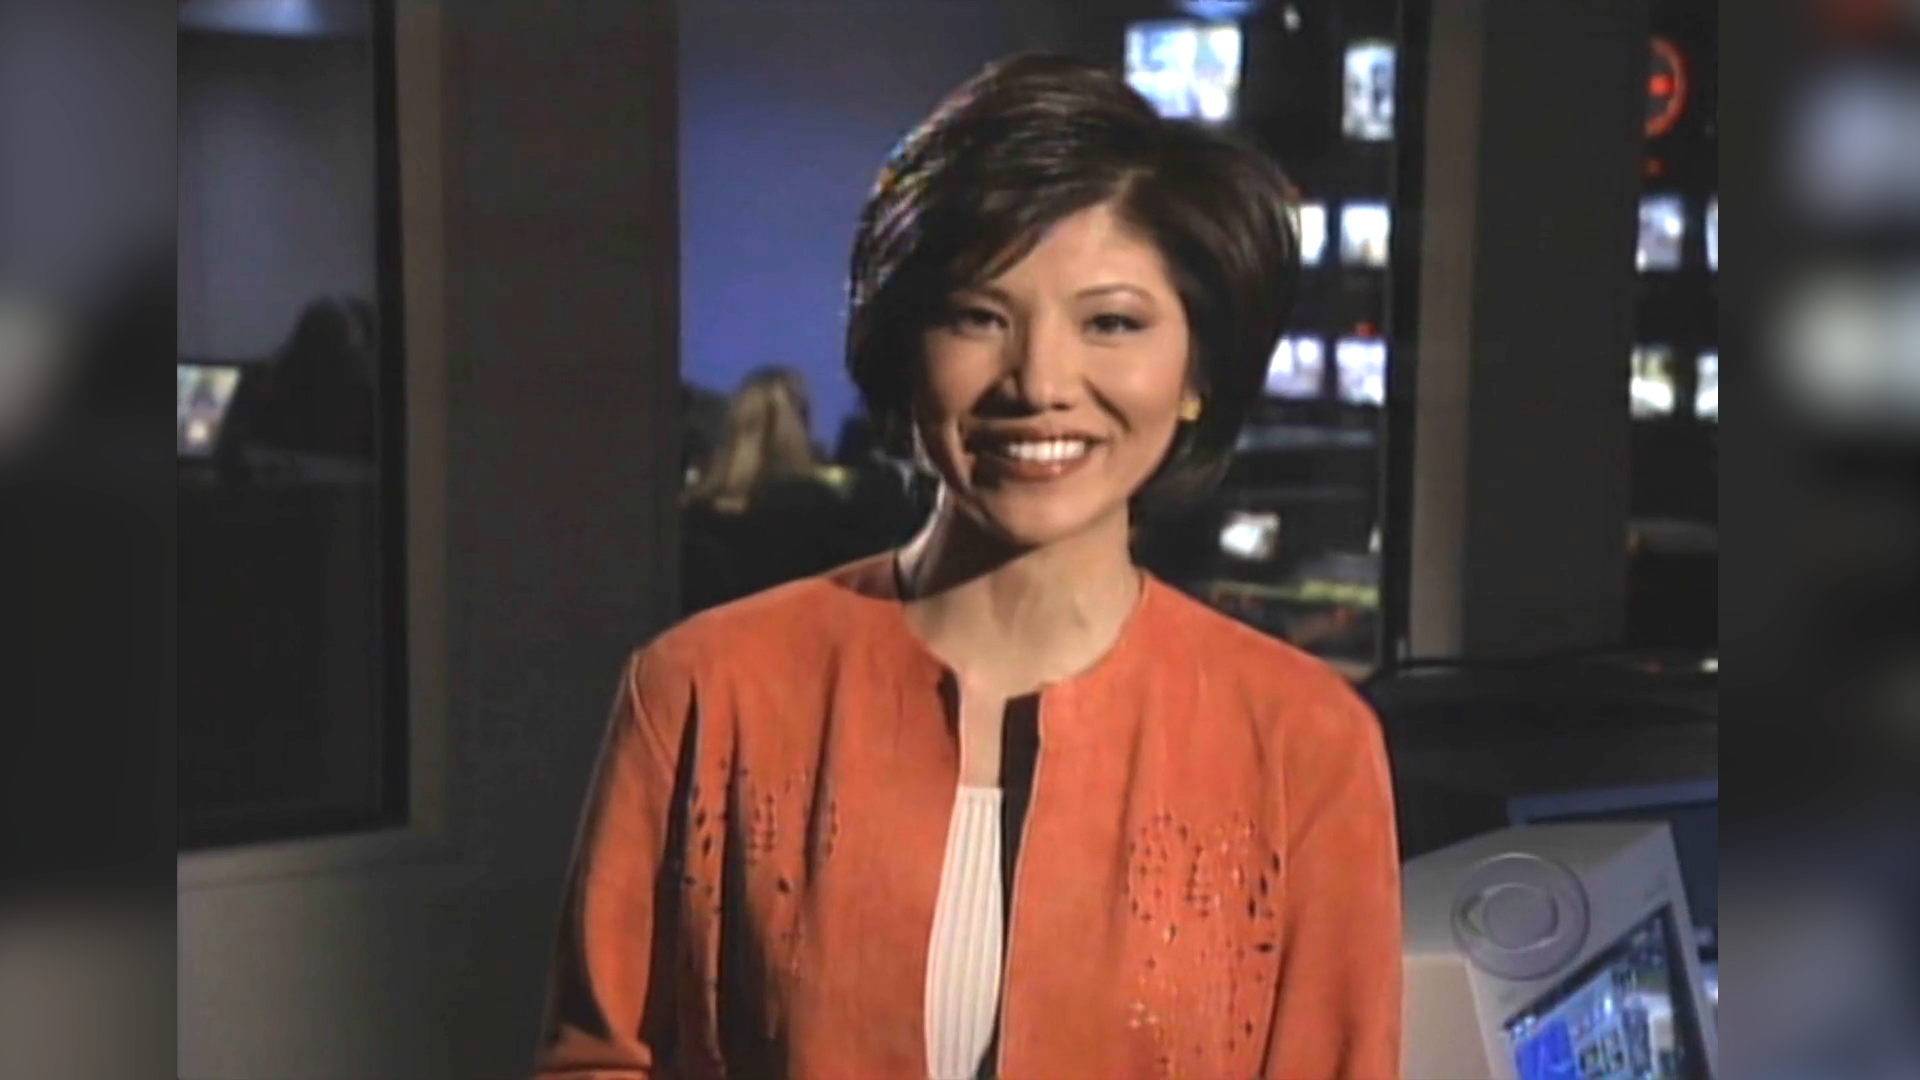 Julie Chen-Moonves on horrible reviews 'Big Brother' got Season 1: 'Like I got like punched in the gut'